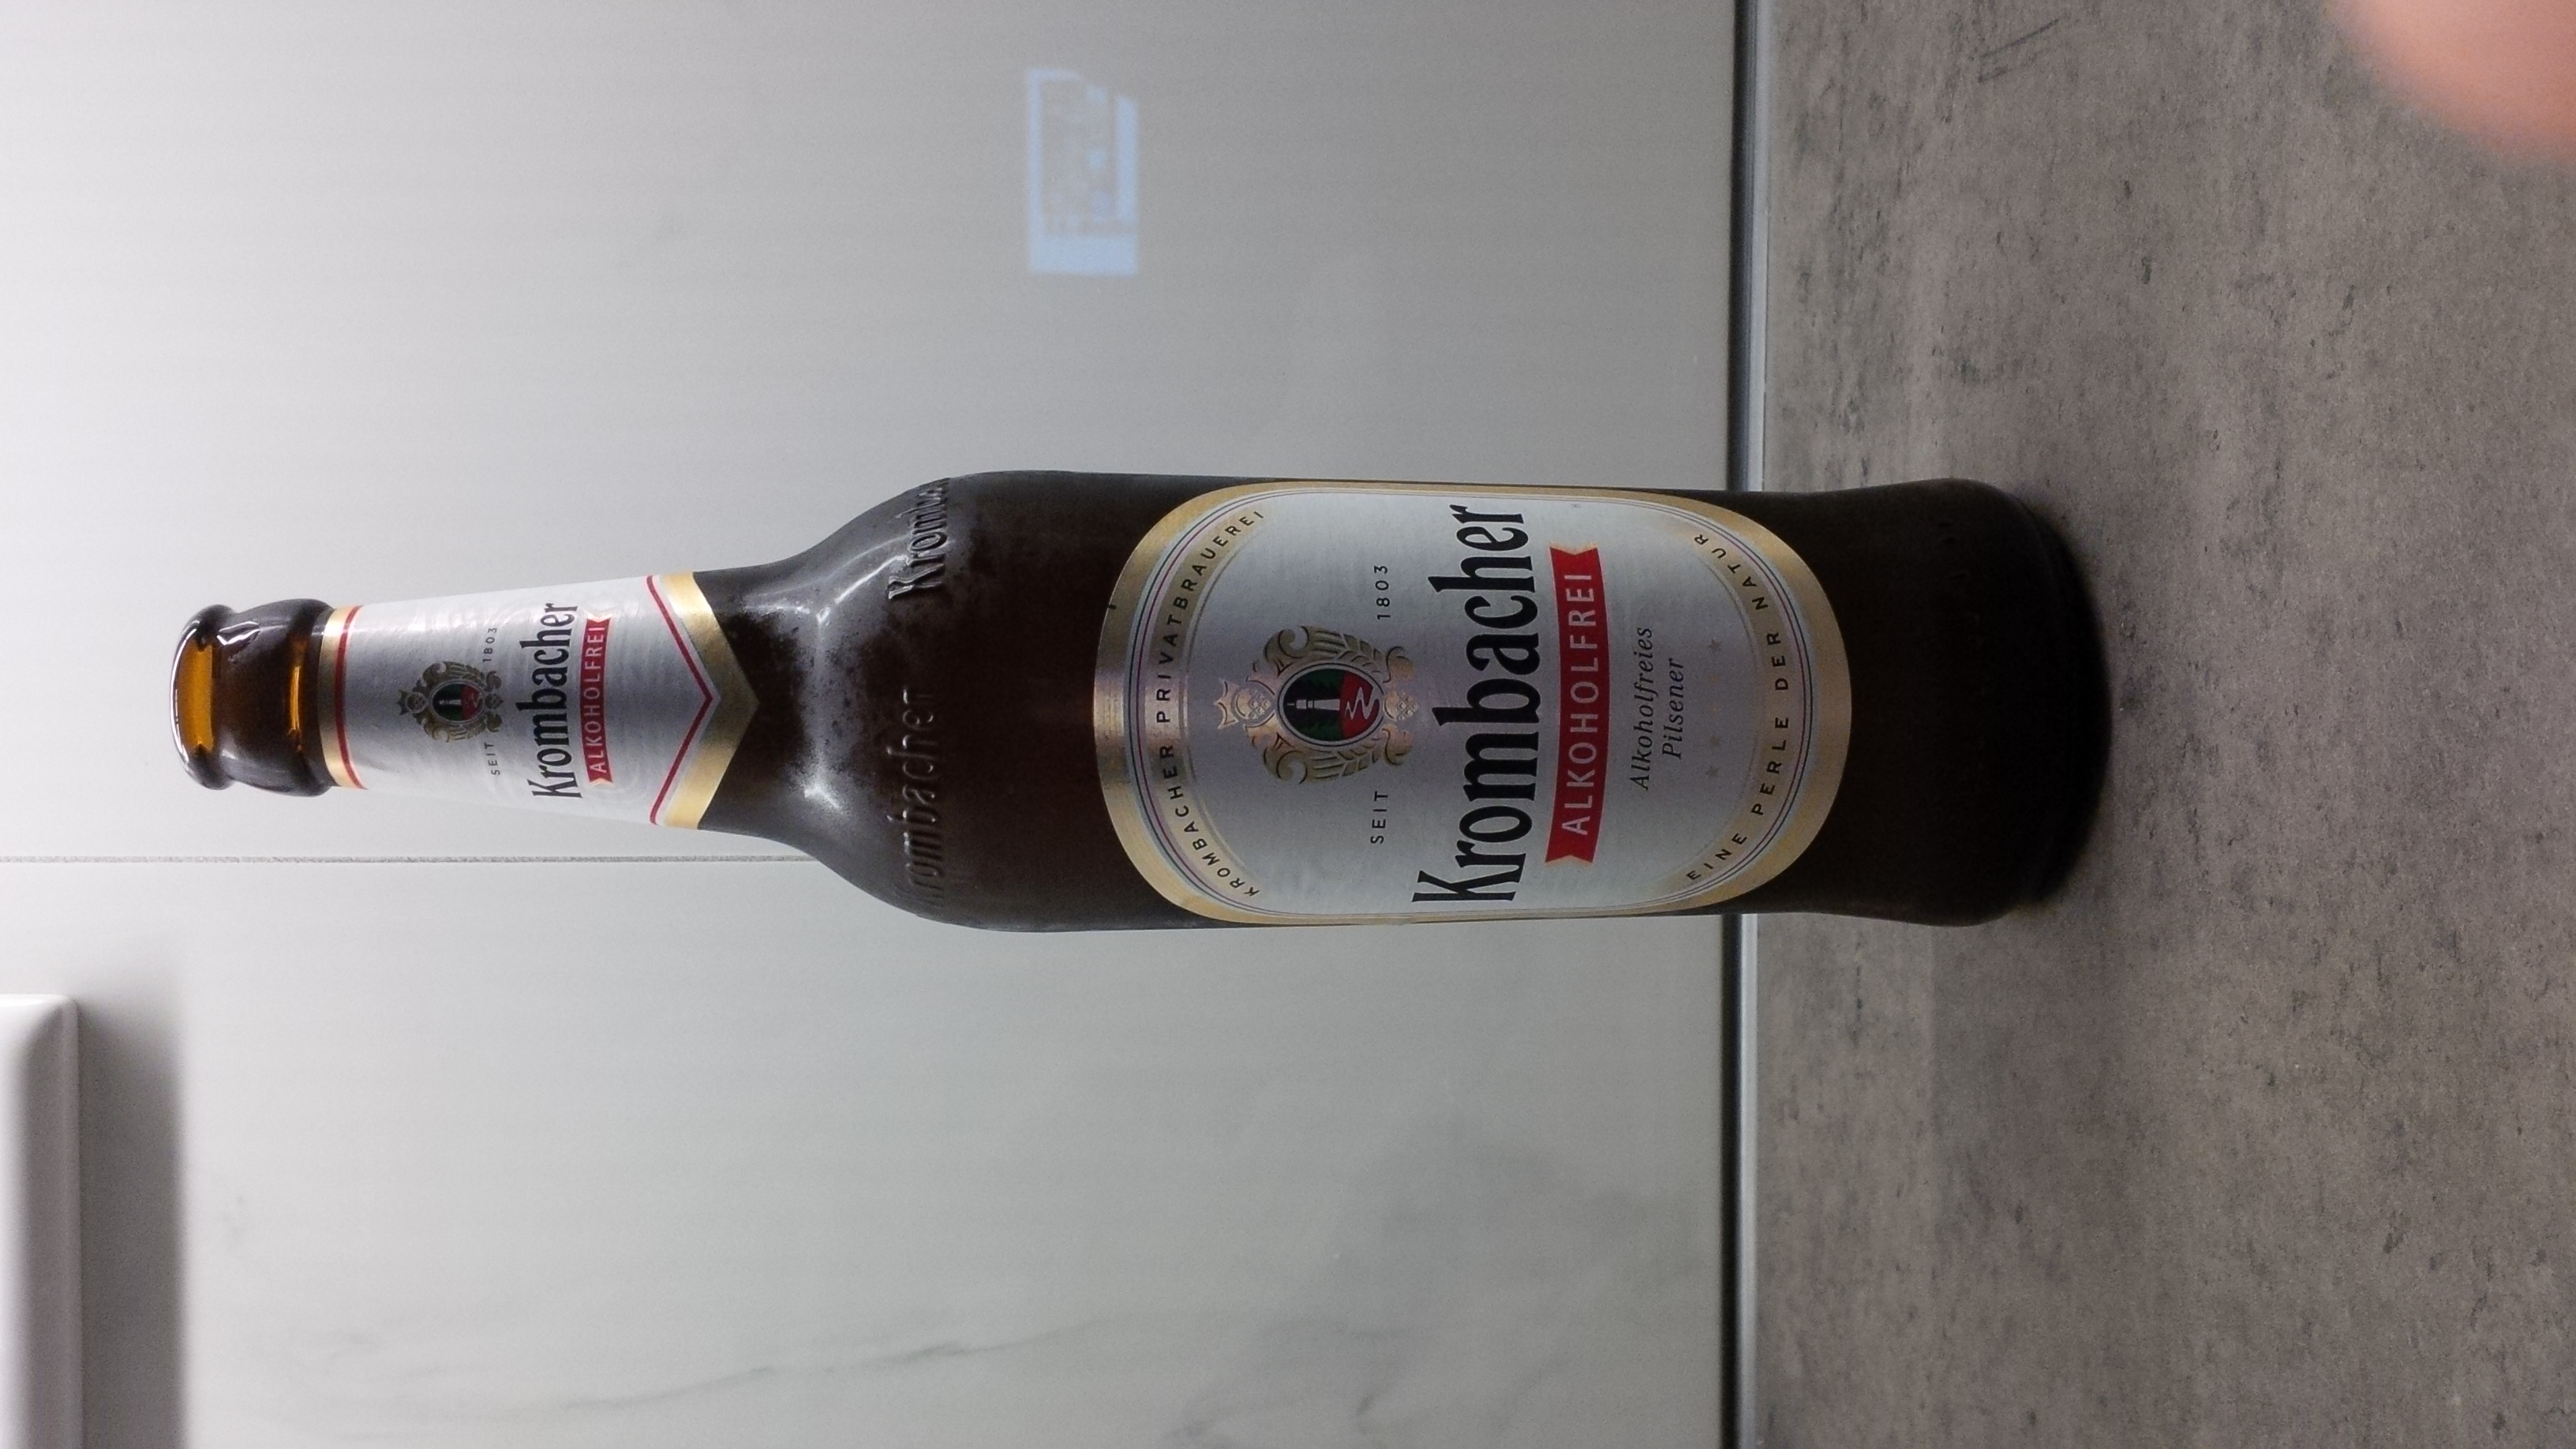 https://foodloader.net/VP_2020-01-01_Krombacher_Alkoholfrei.jpg